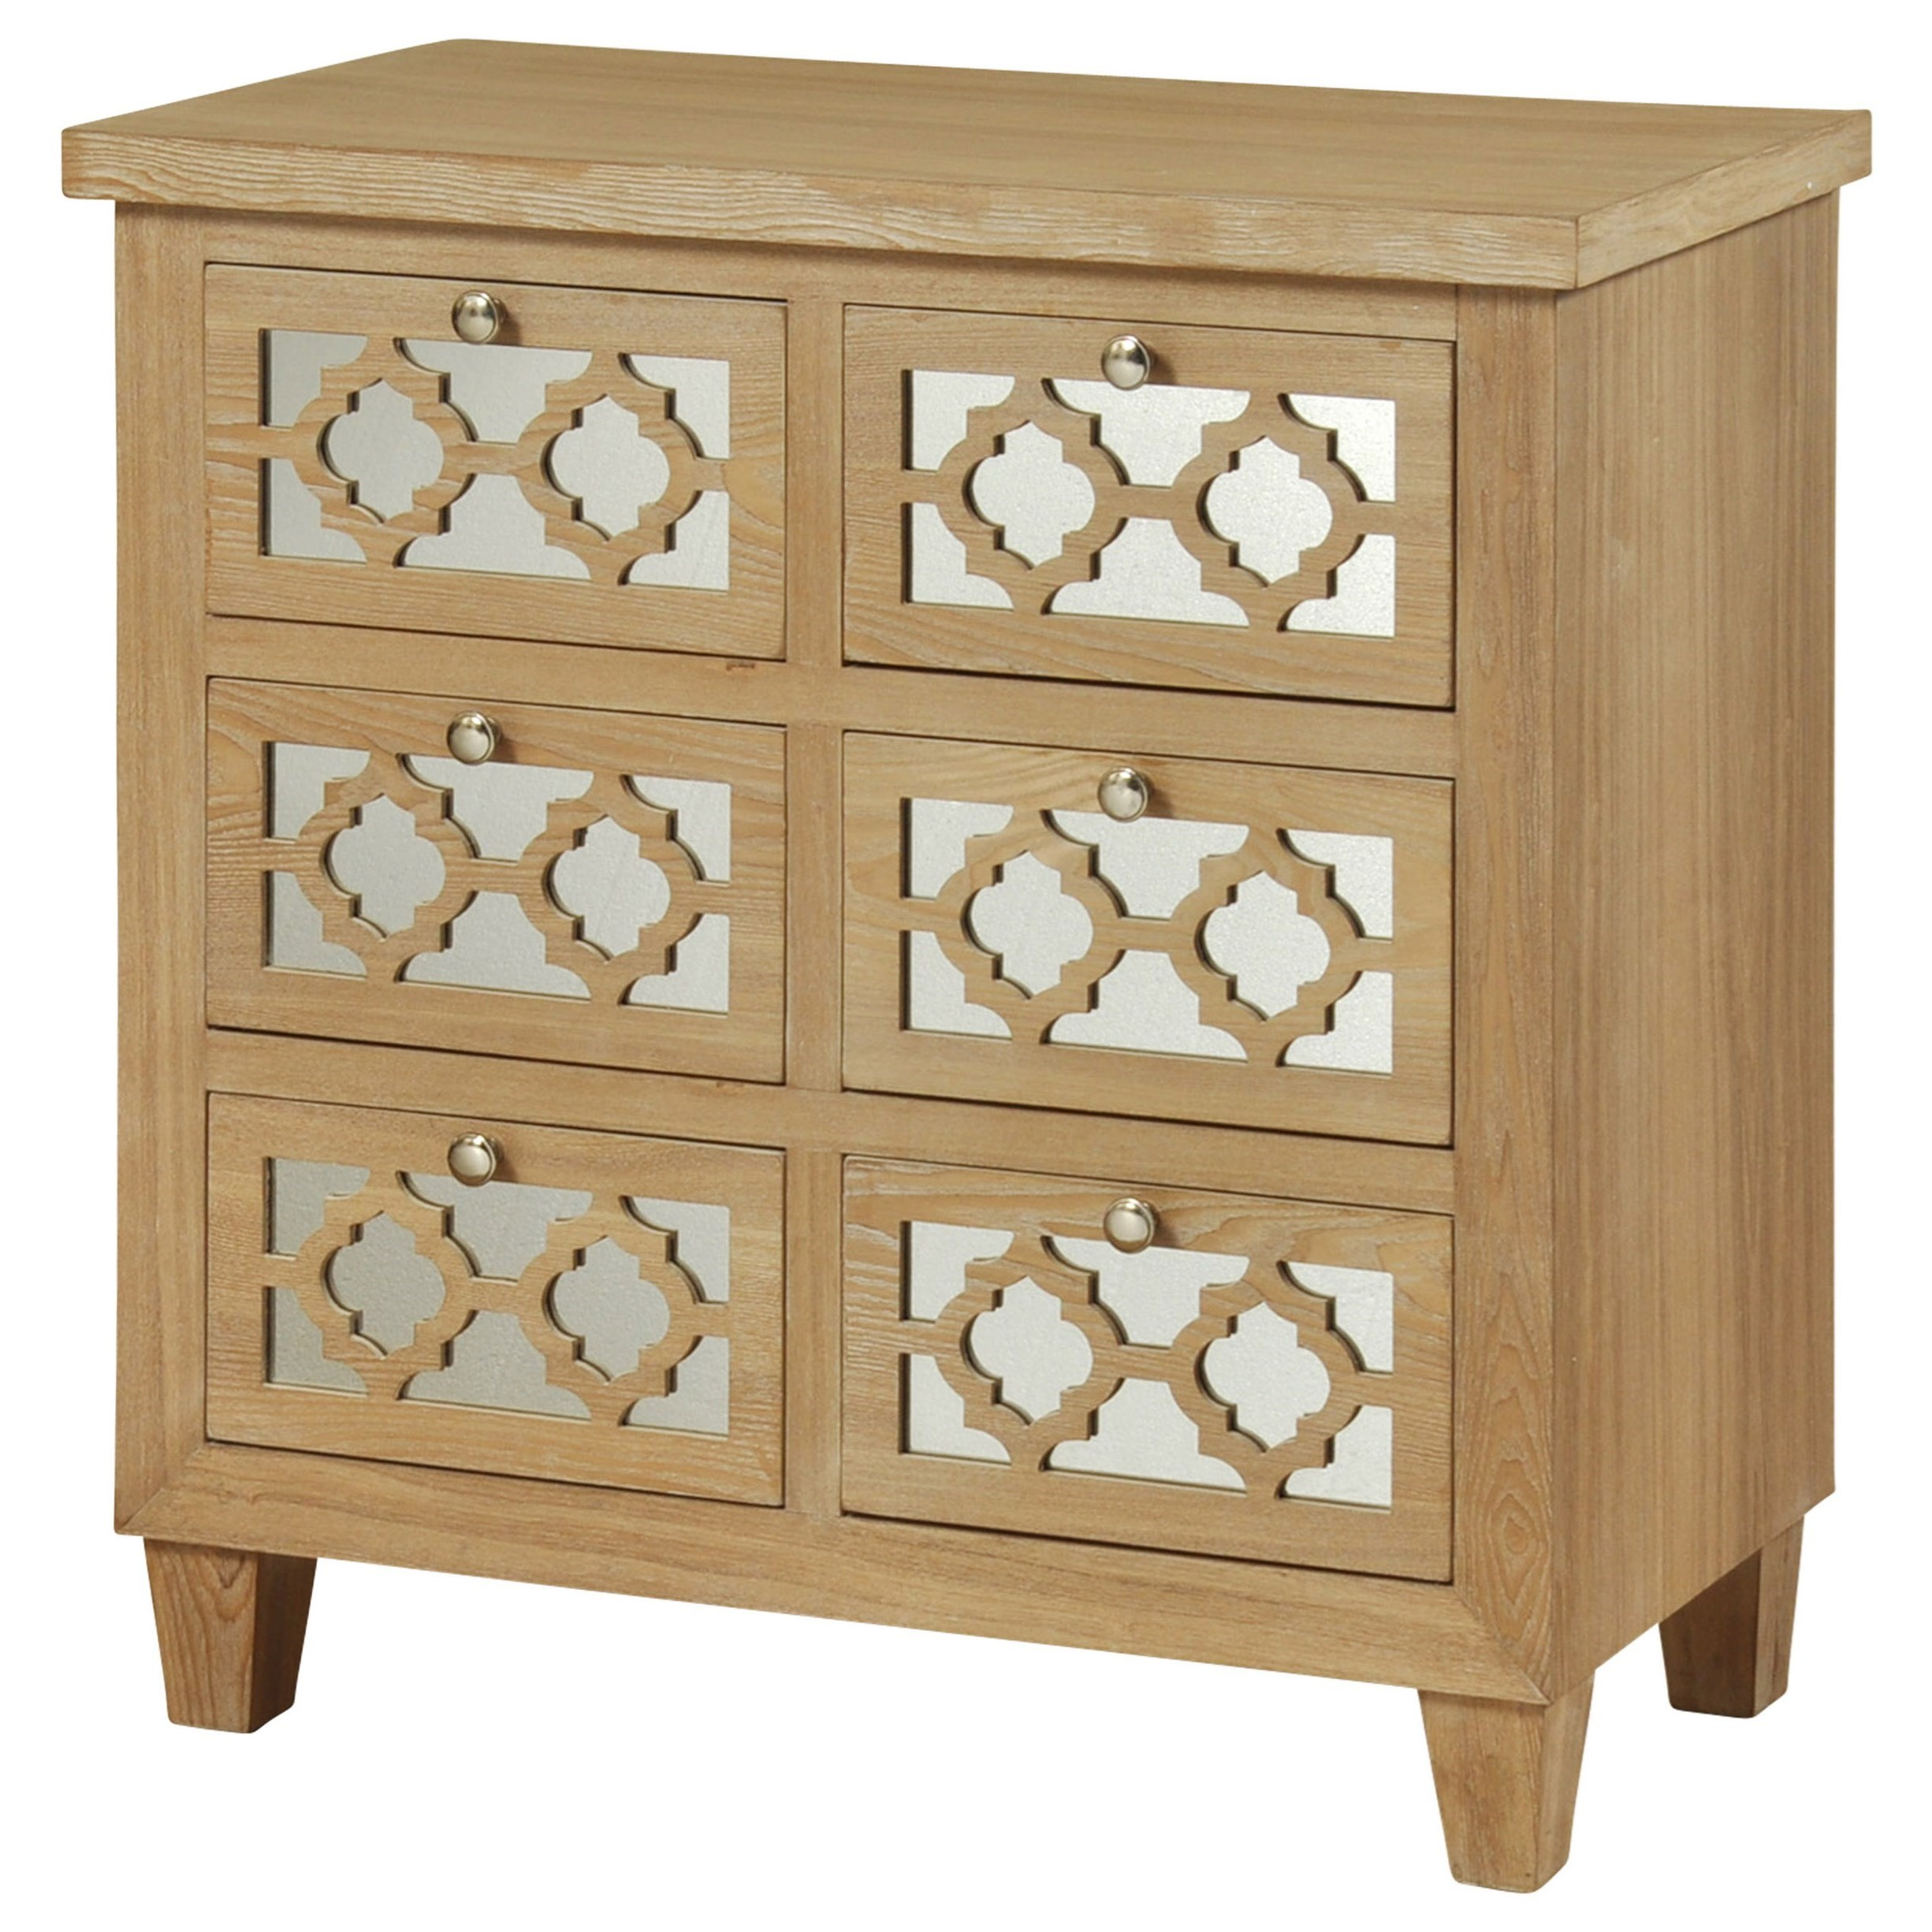 Stylecraft cabinets - Stylecraft Occasional Cabinets 6 Drawer Wood Grain Cabinet Item Number Sf24591